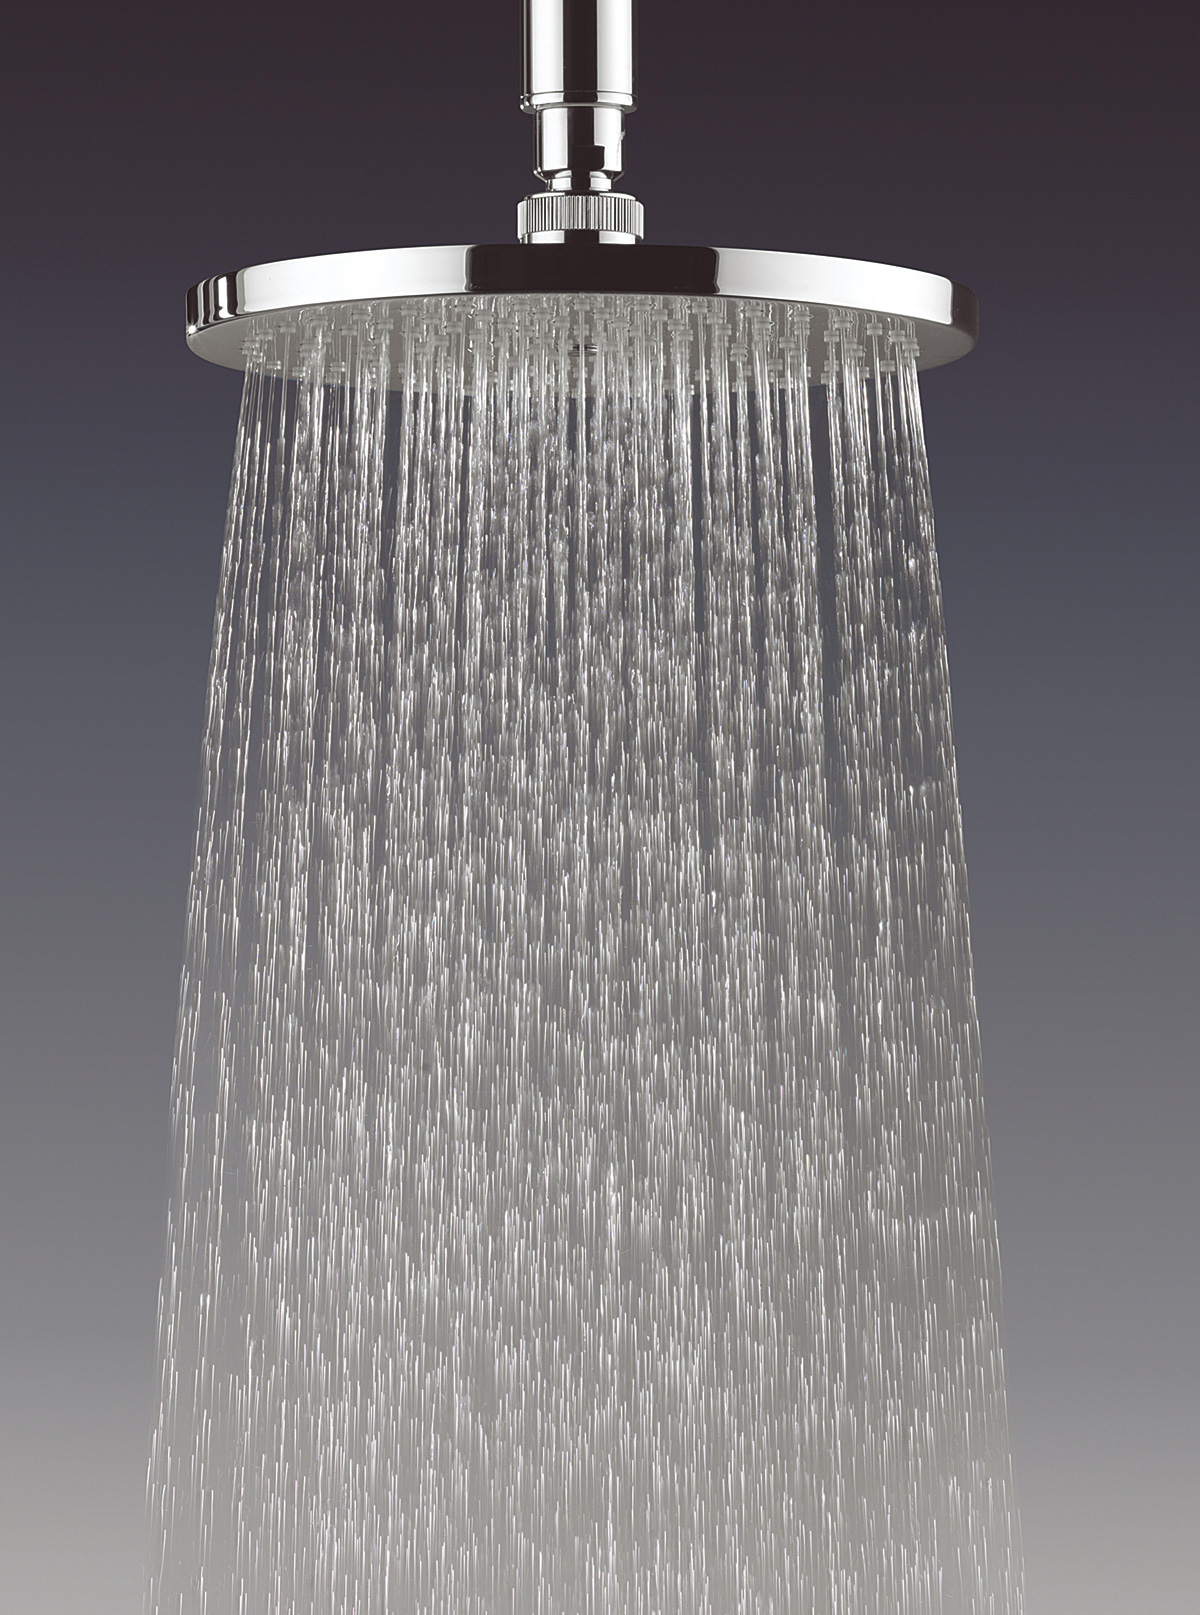 Central Shower Heads